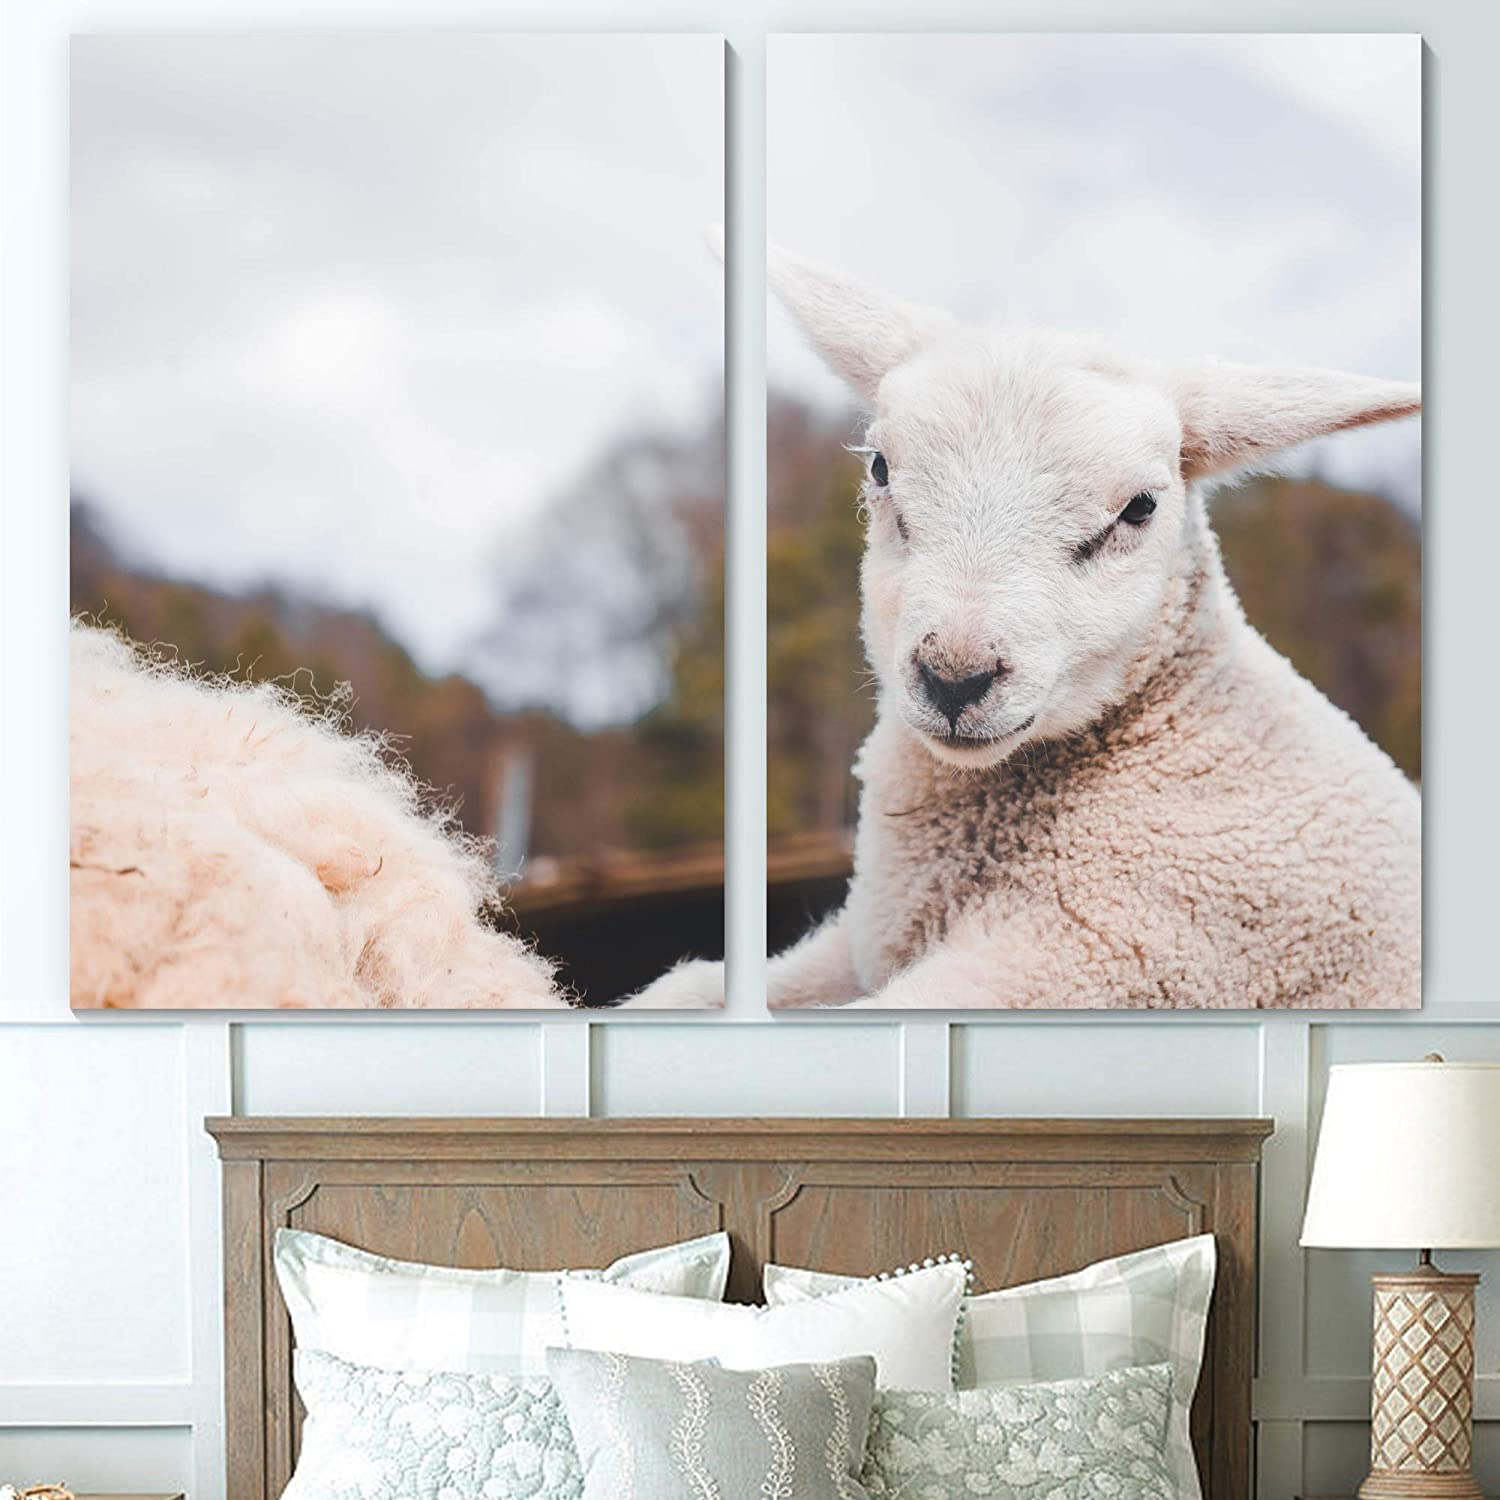 Sign Leader Sheep Wall Art Animals Expressionism Multicolor Photography Farmhouse/Country Fun Canvas Prints for Living Room Bedroom - 24x36 x 2 Panels